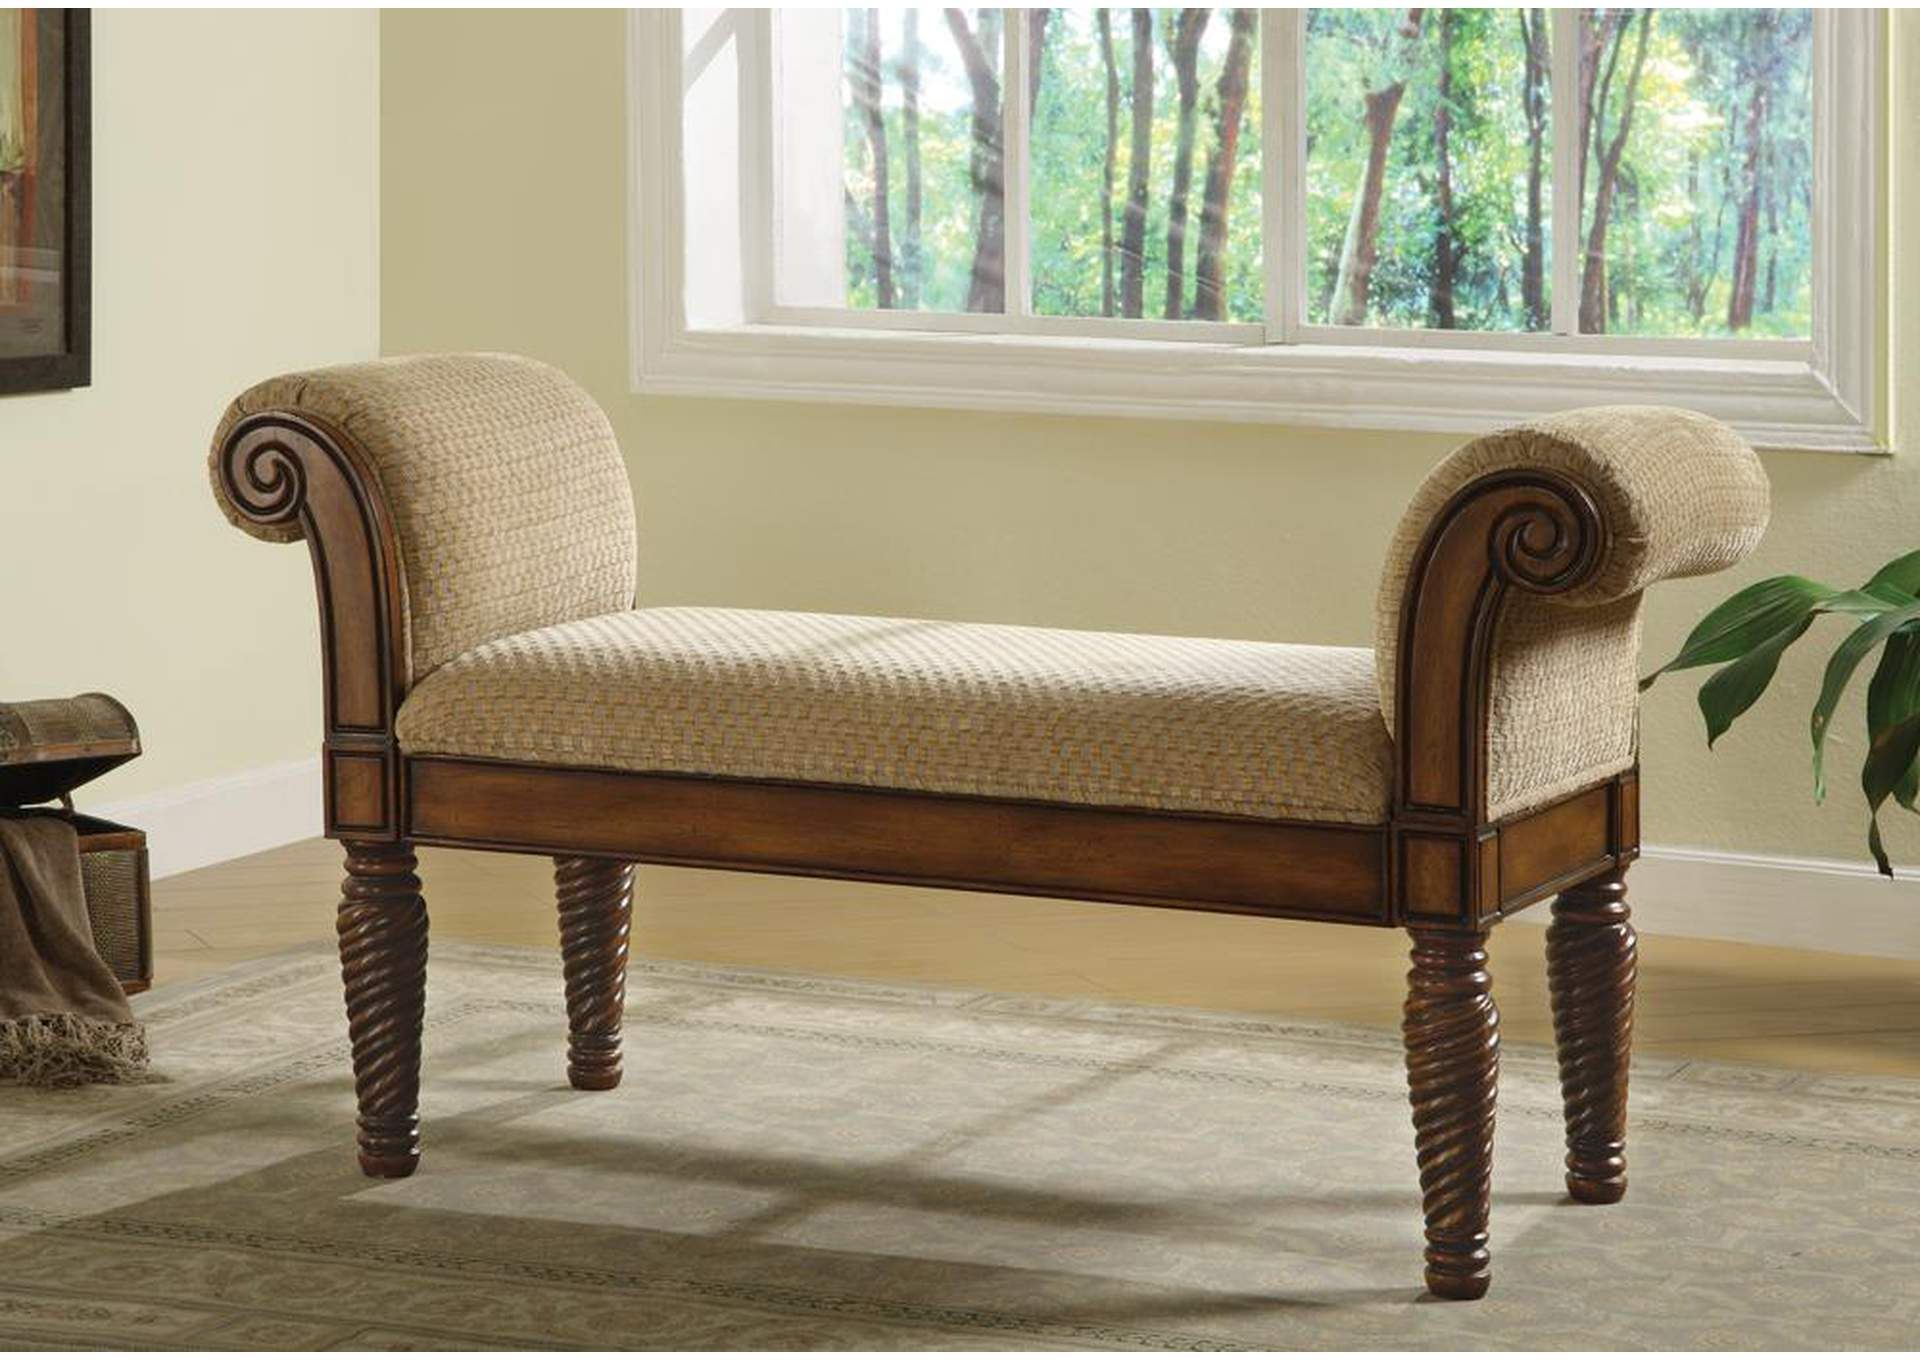 Beige & Brown Stately Upholstered Bench,ABF Coaster Furniture